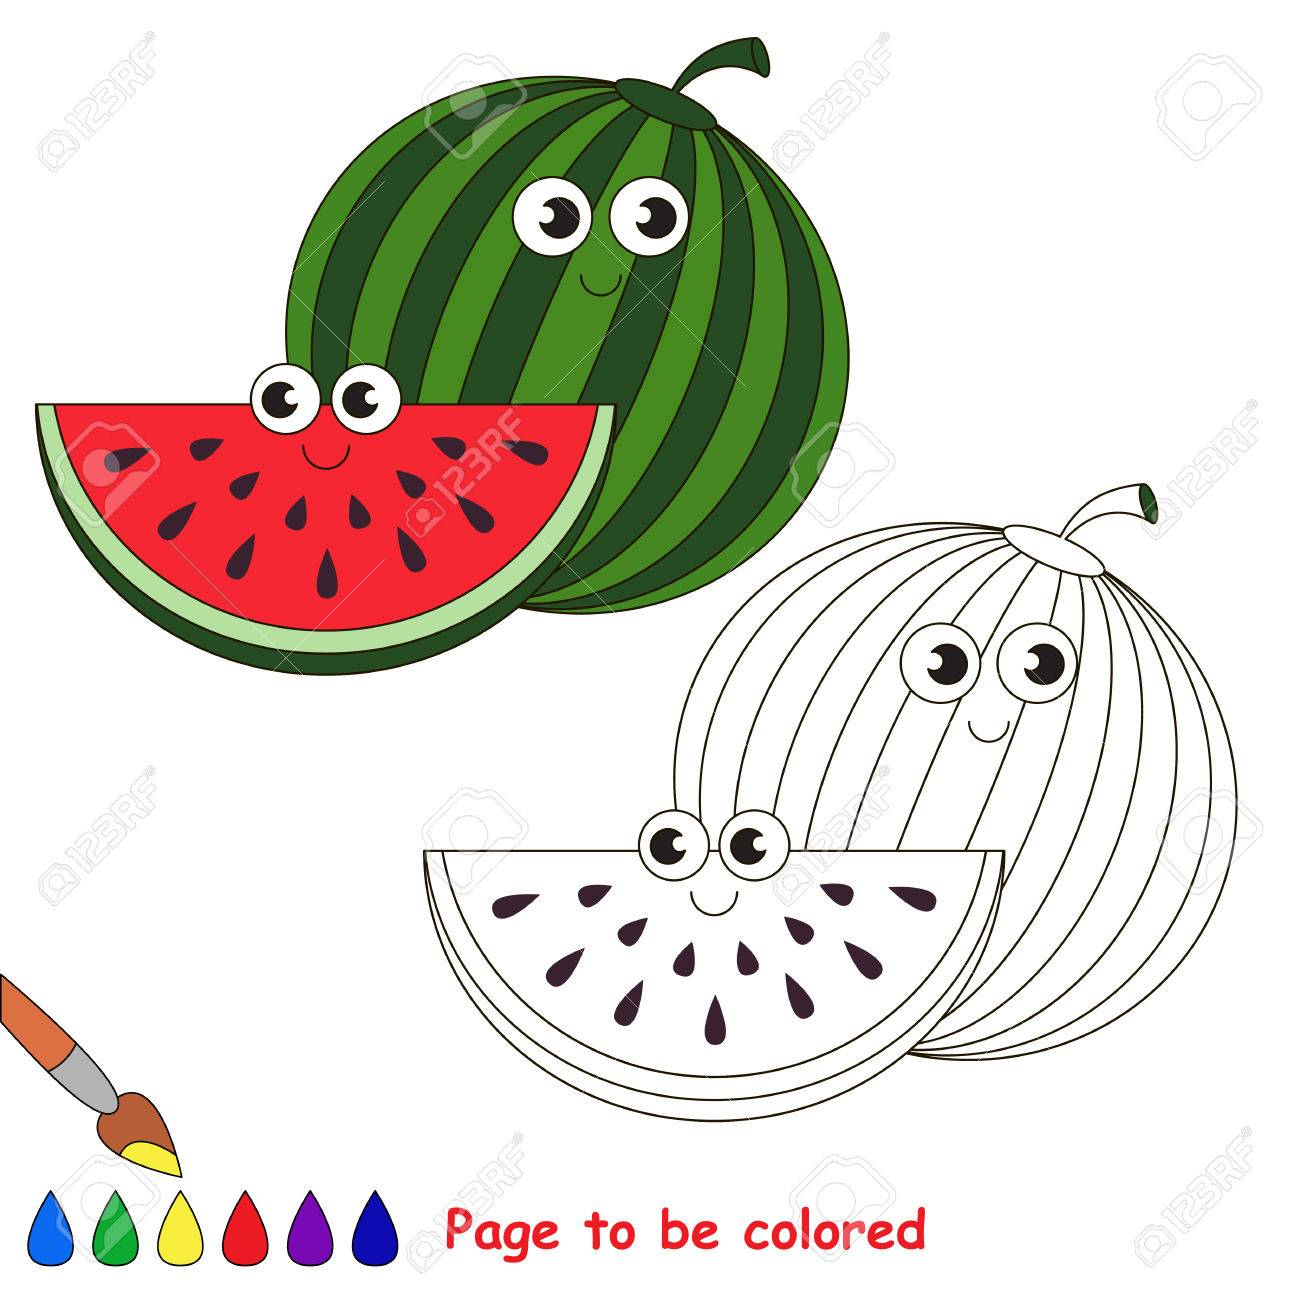 Sweet Watermelon To Be Colored. Coloring Book To Educate Kids ...